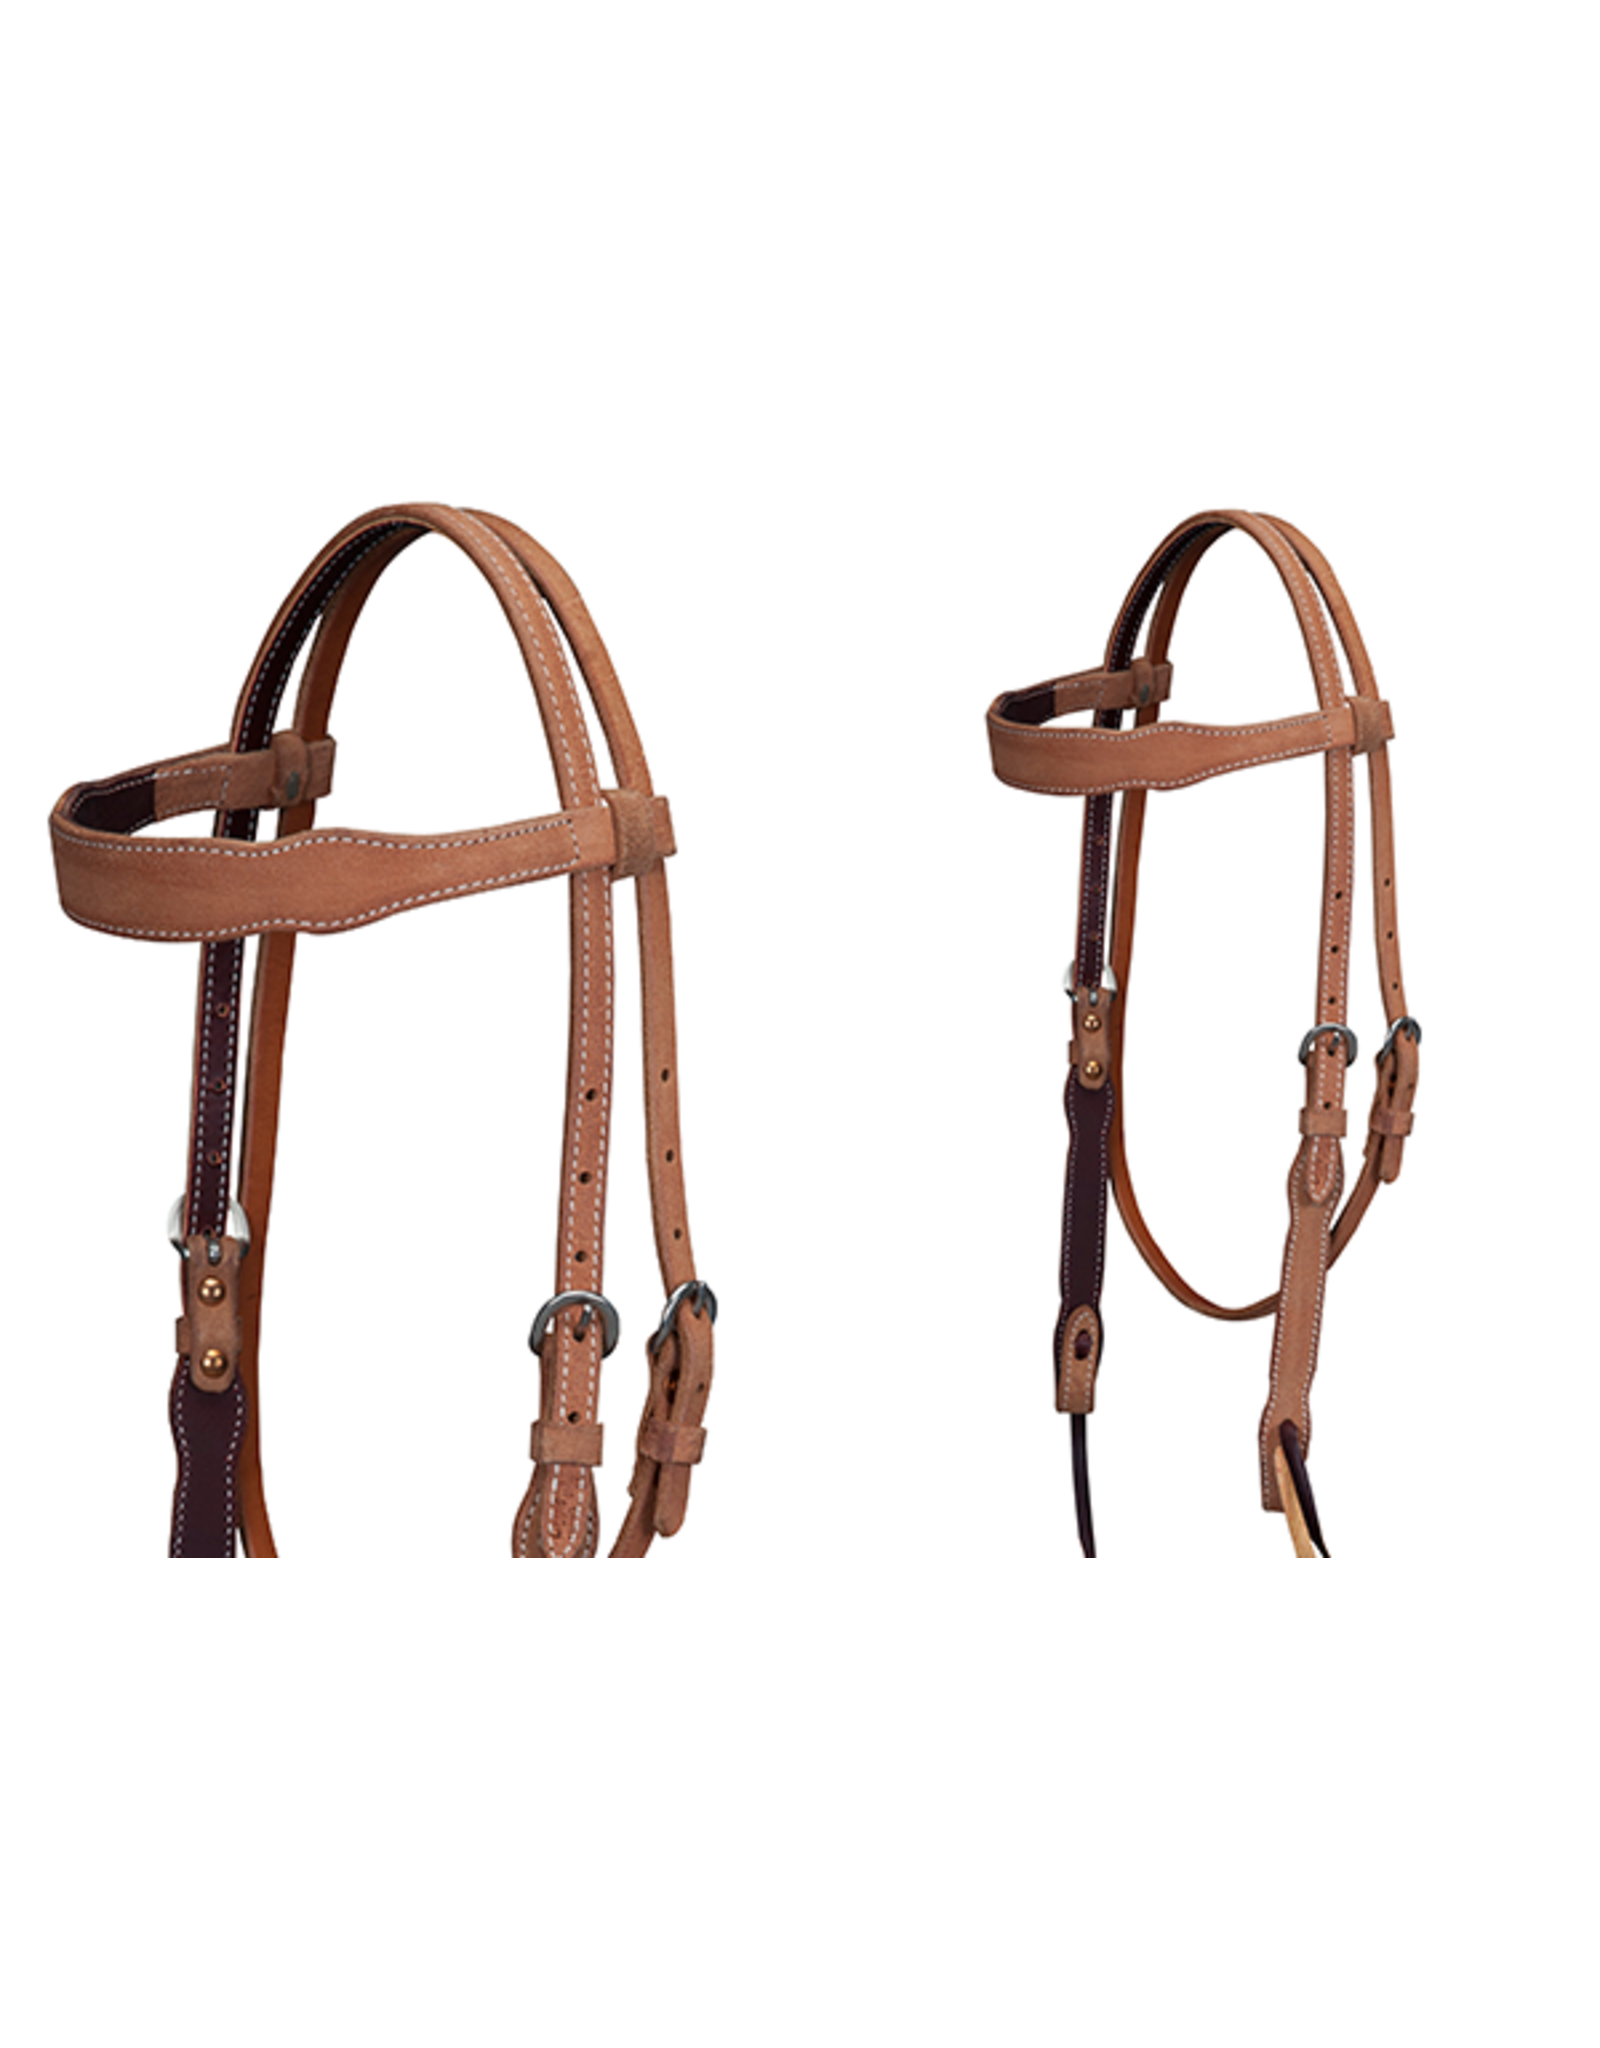 Cactus Roughout Browband Headstall Total Equine Supplies Ltd